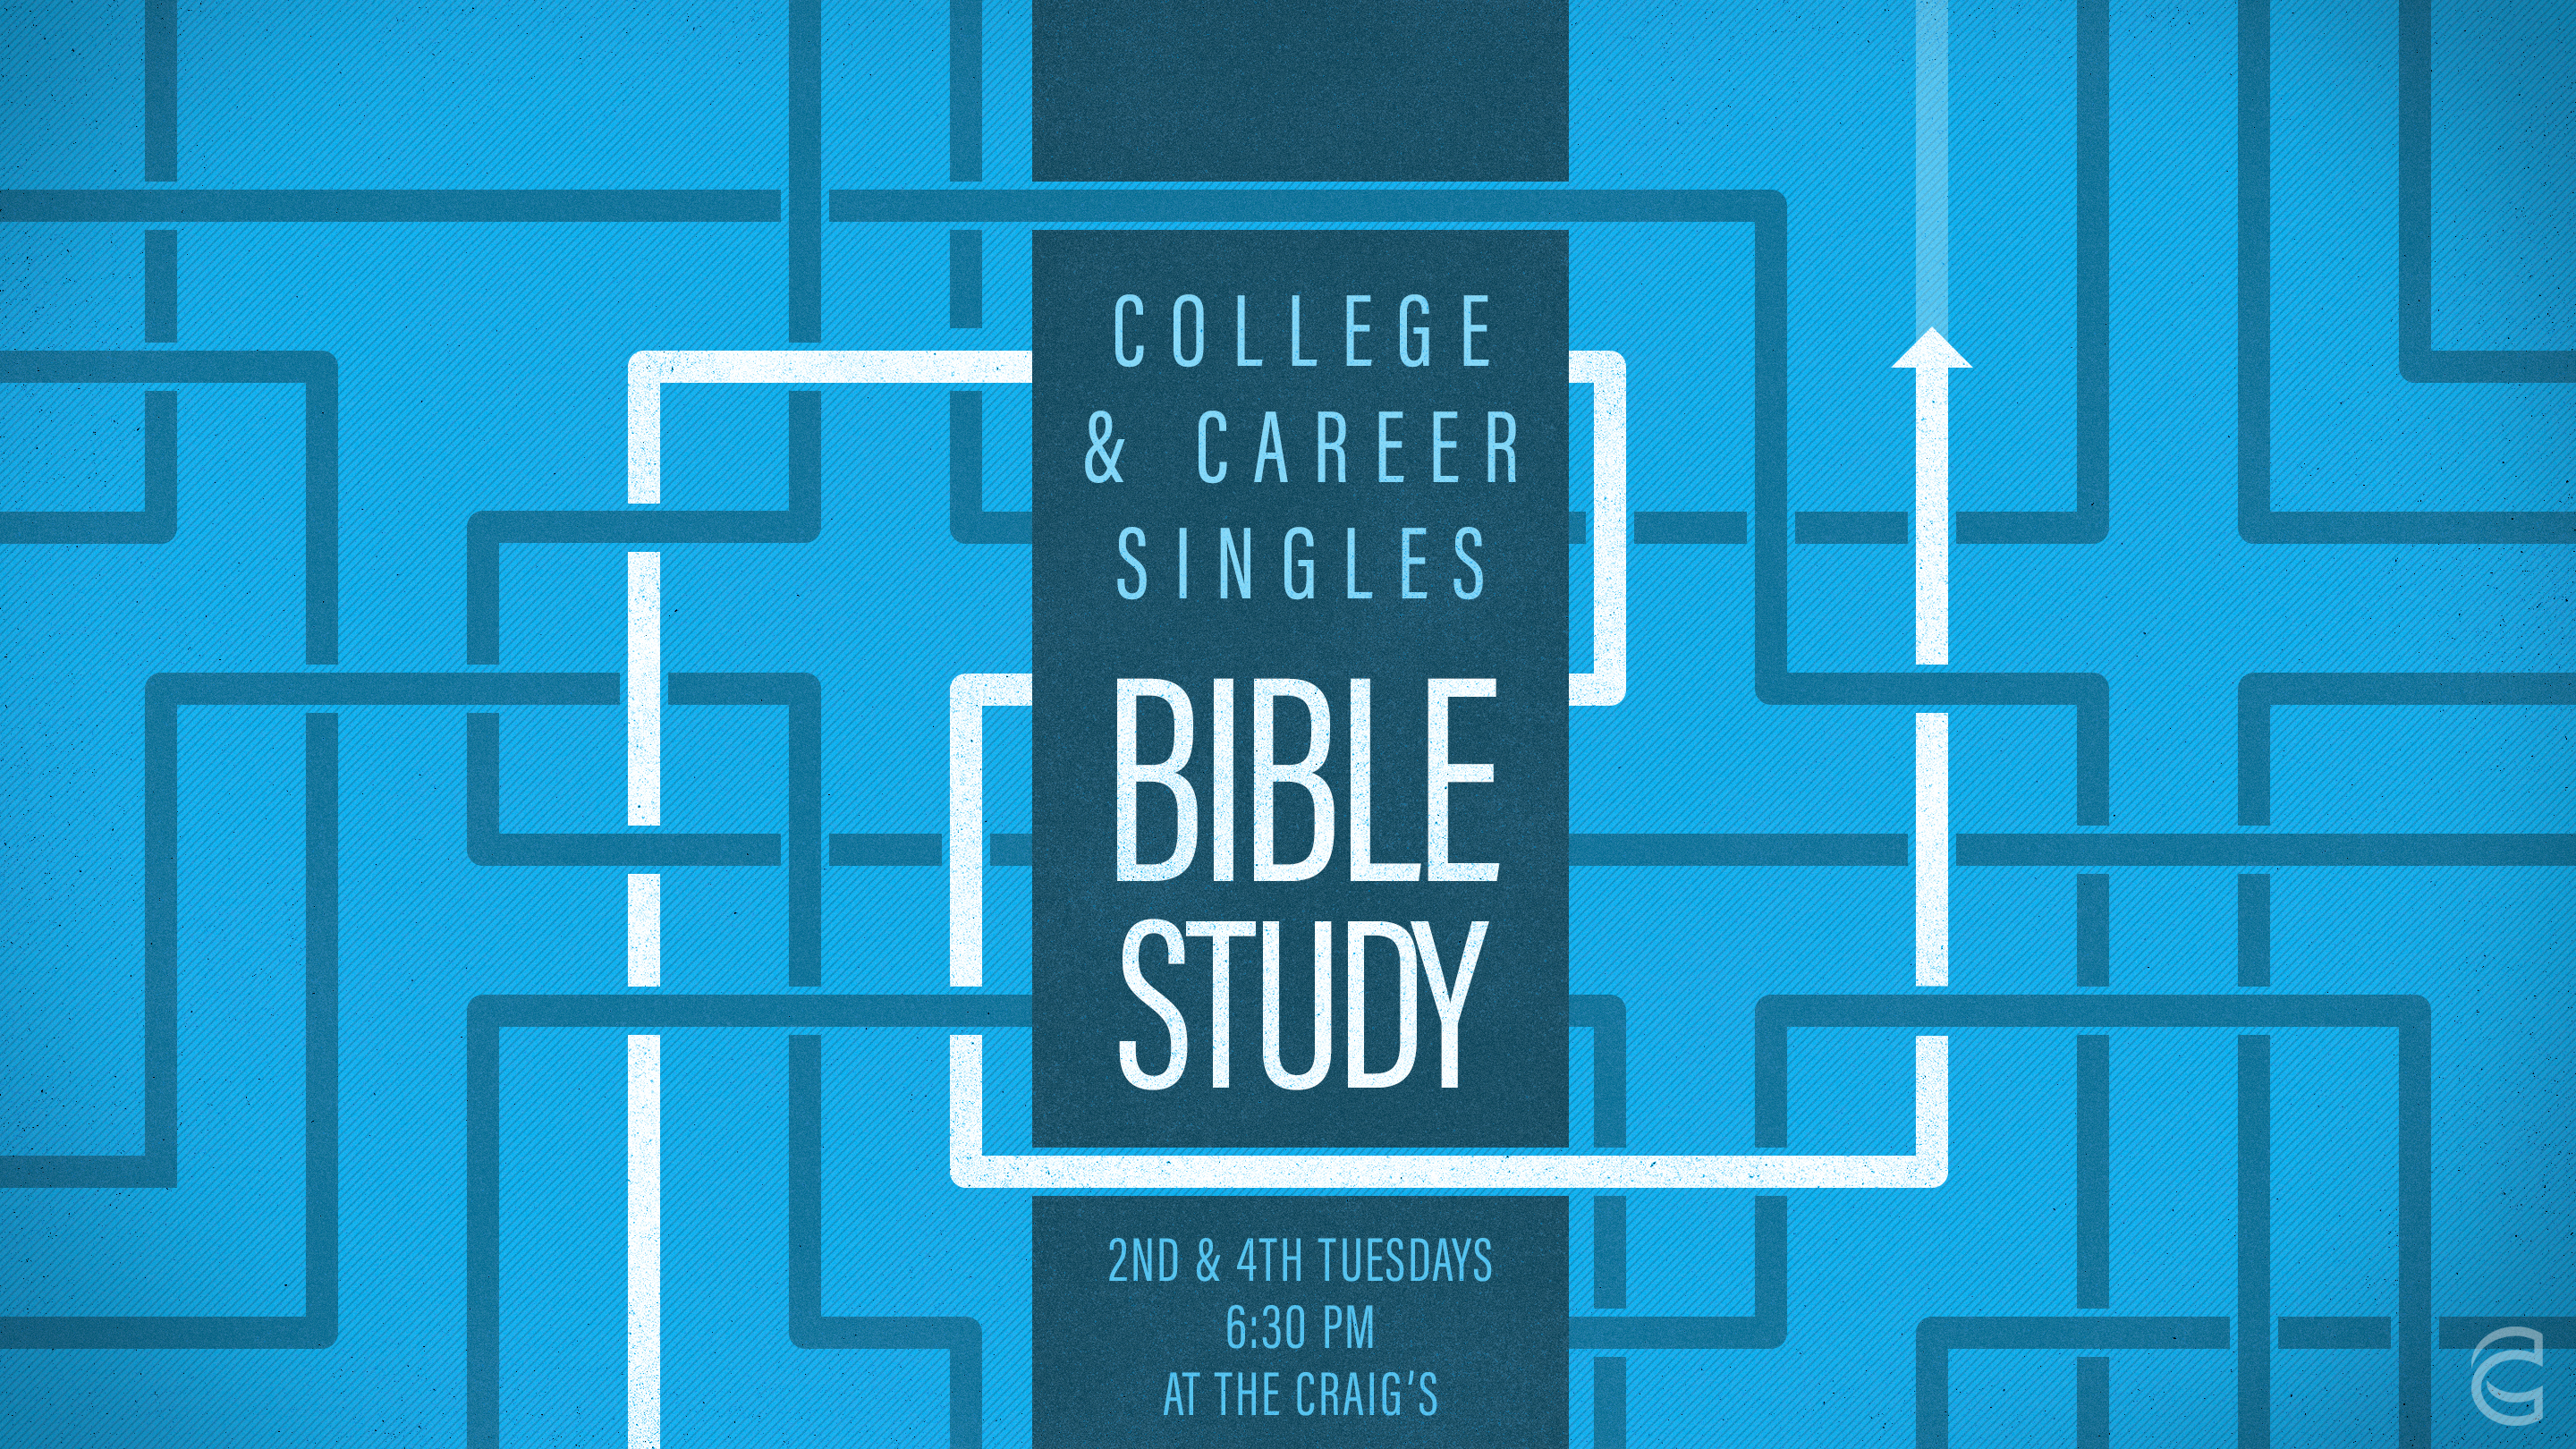 College & Career Singles Bible Study 2021